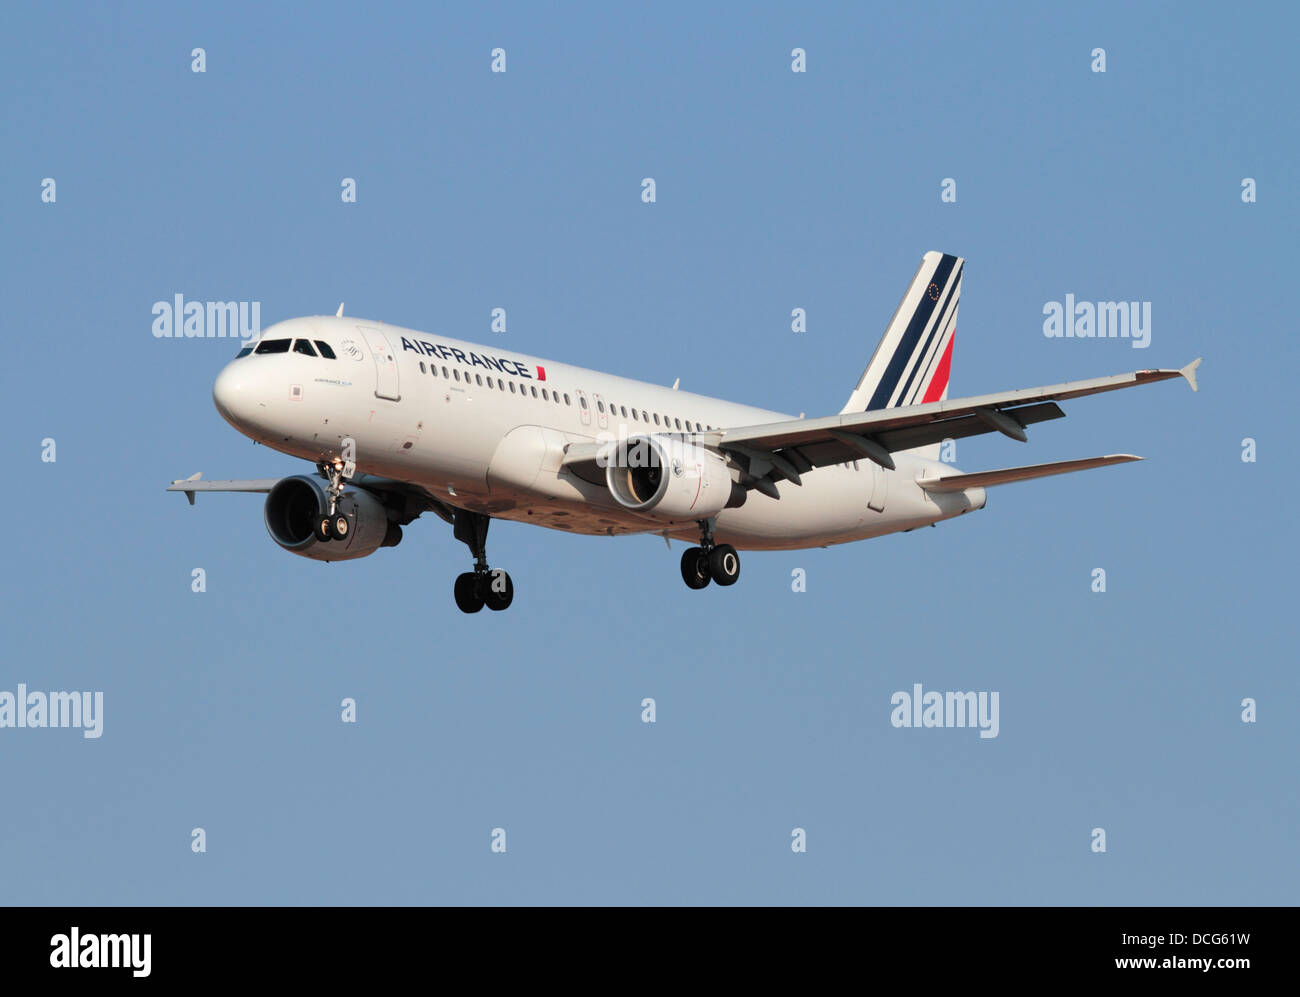 Airbus A320 commercial passenger jet aircraft belonging to French airline Air France on approach against a clear - Stock Image